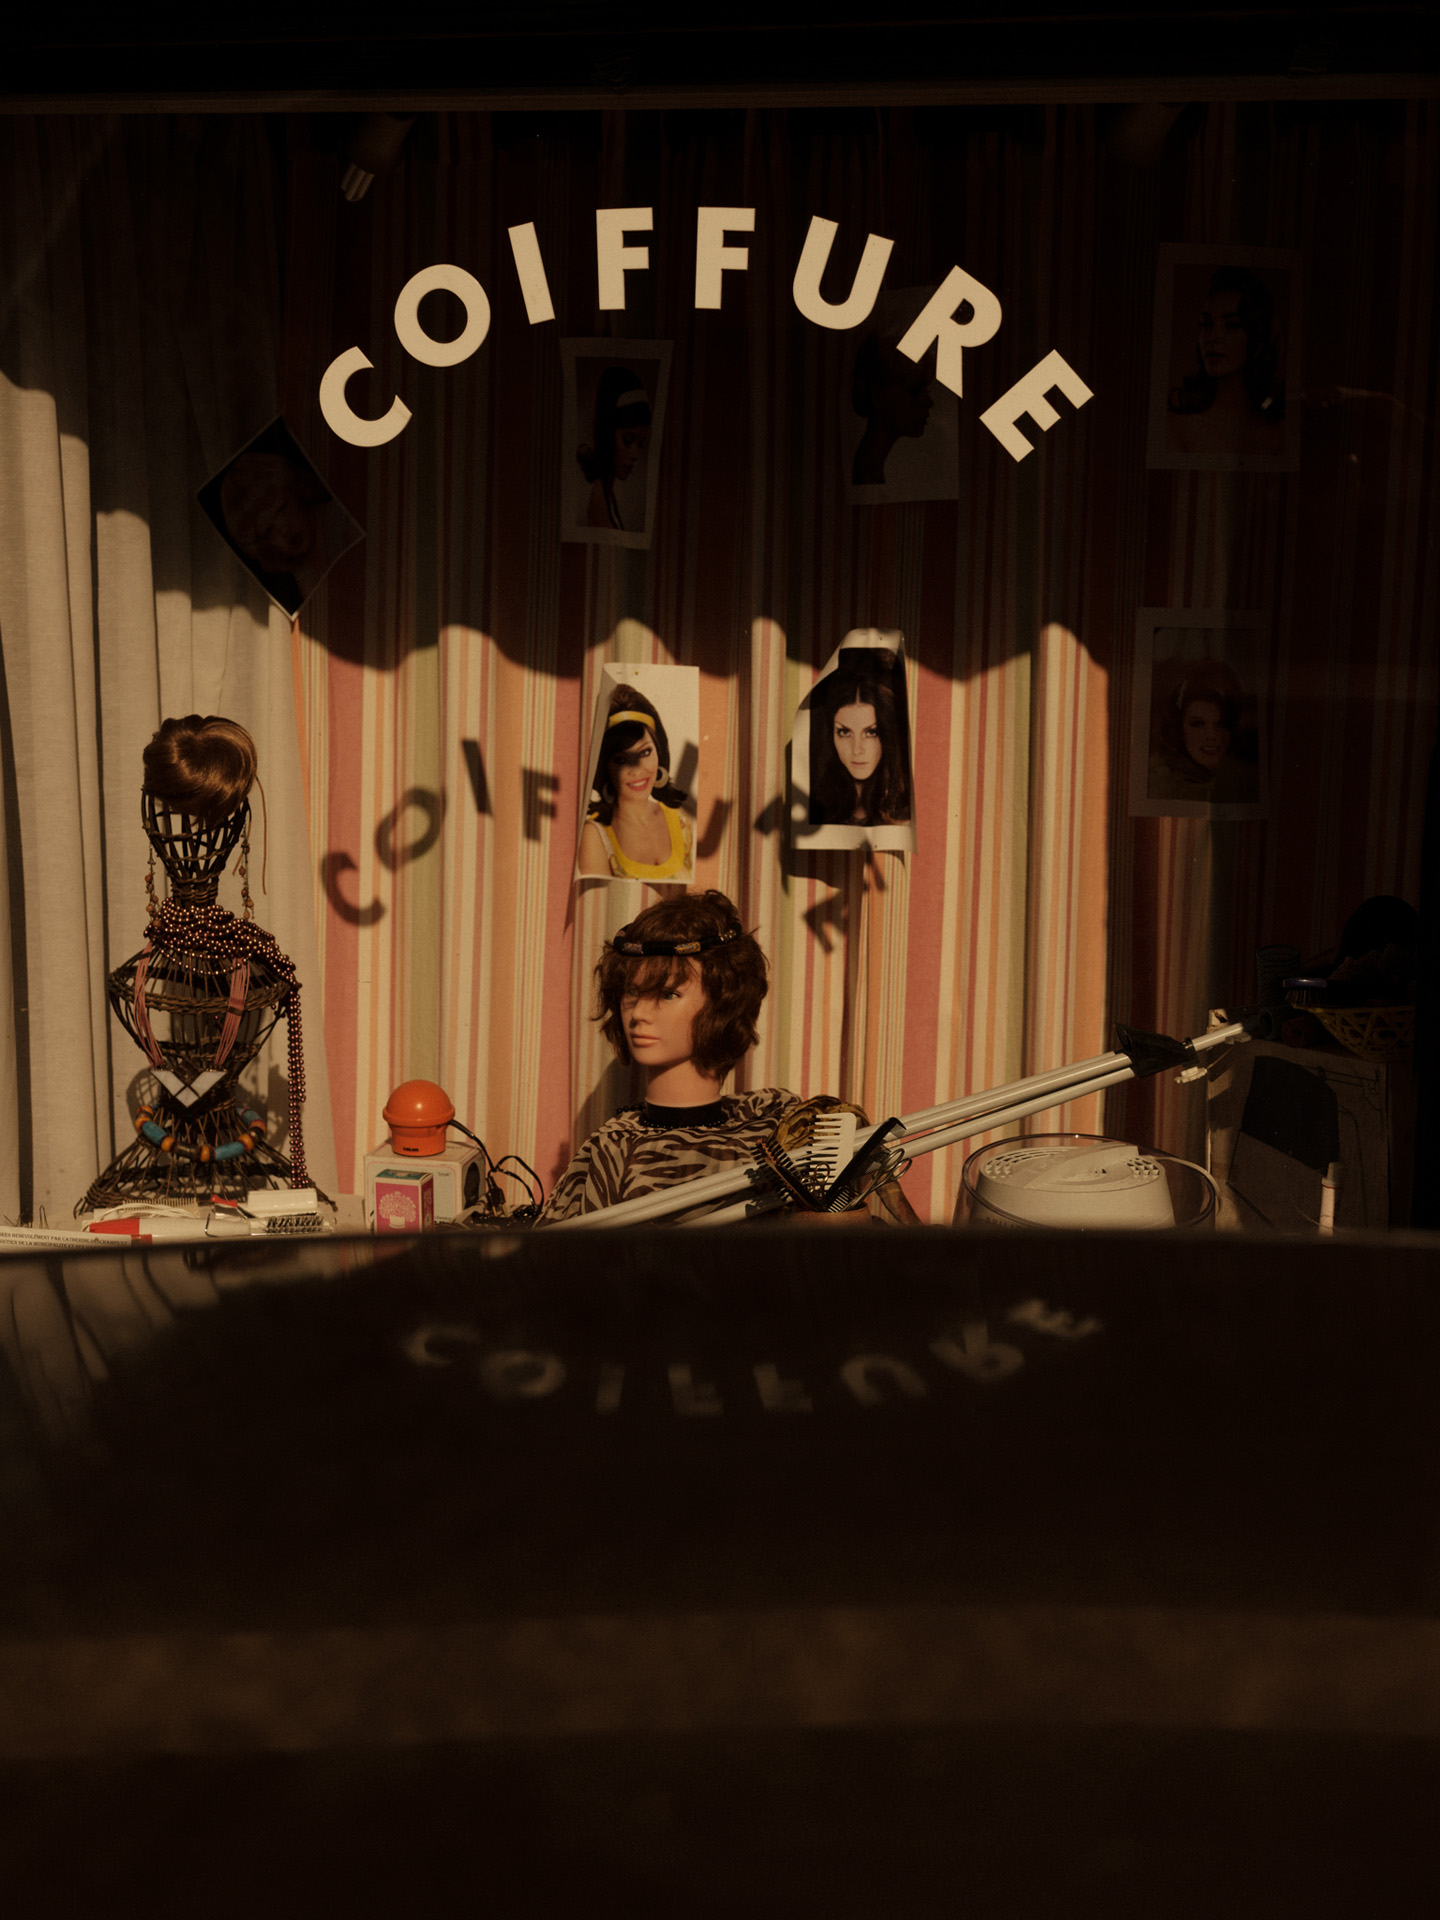 hairdresser shop window by Alexi Hobbs in Auvergne for Reflets de France